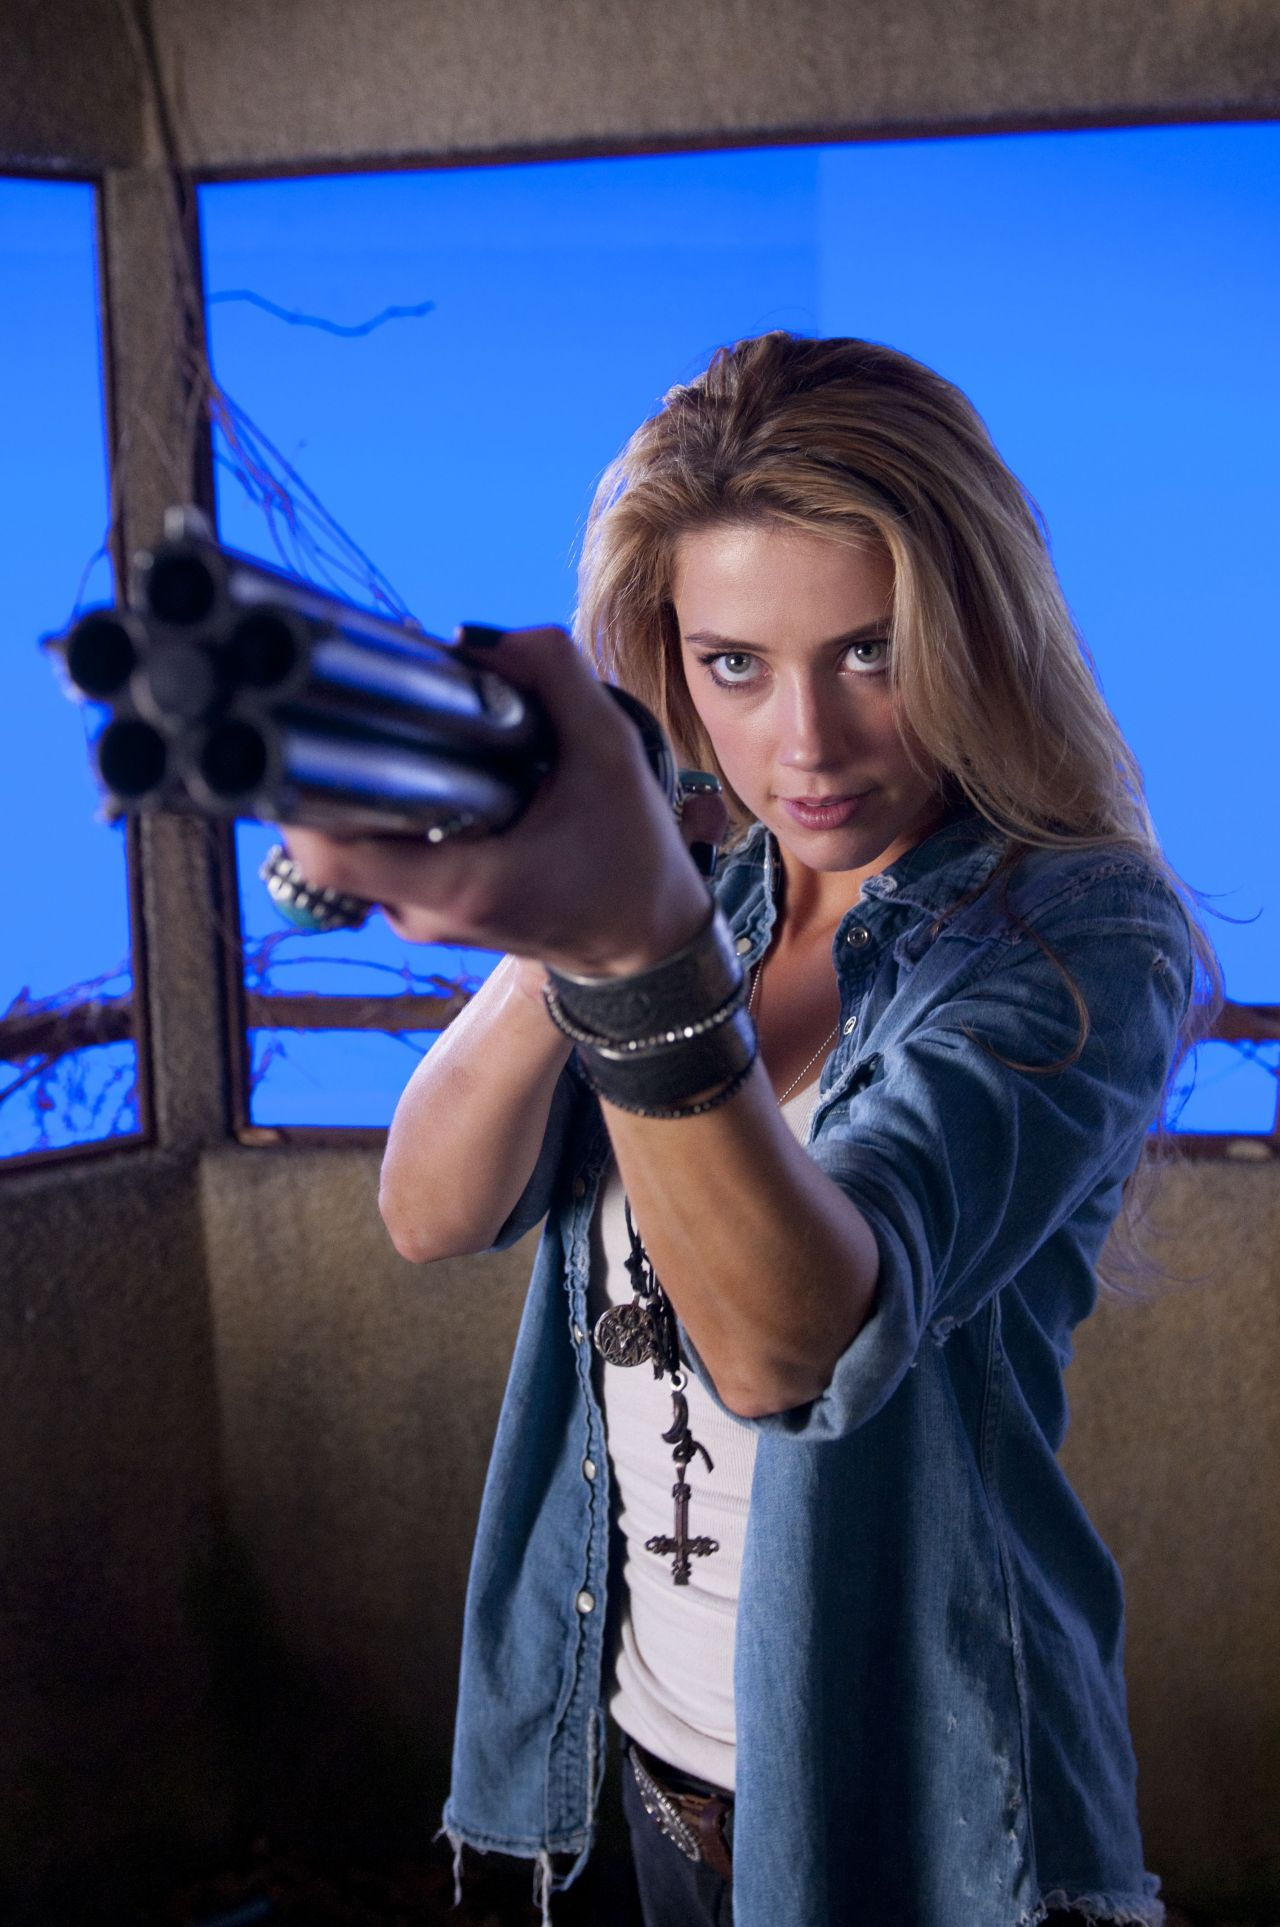 Amber Heard - DRIVE ANGRY Movie Photos Amber Heard Movies